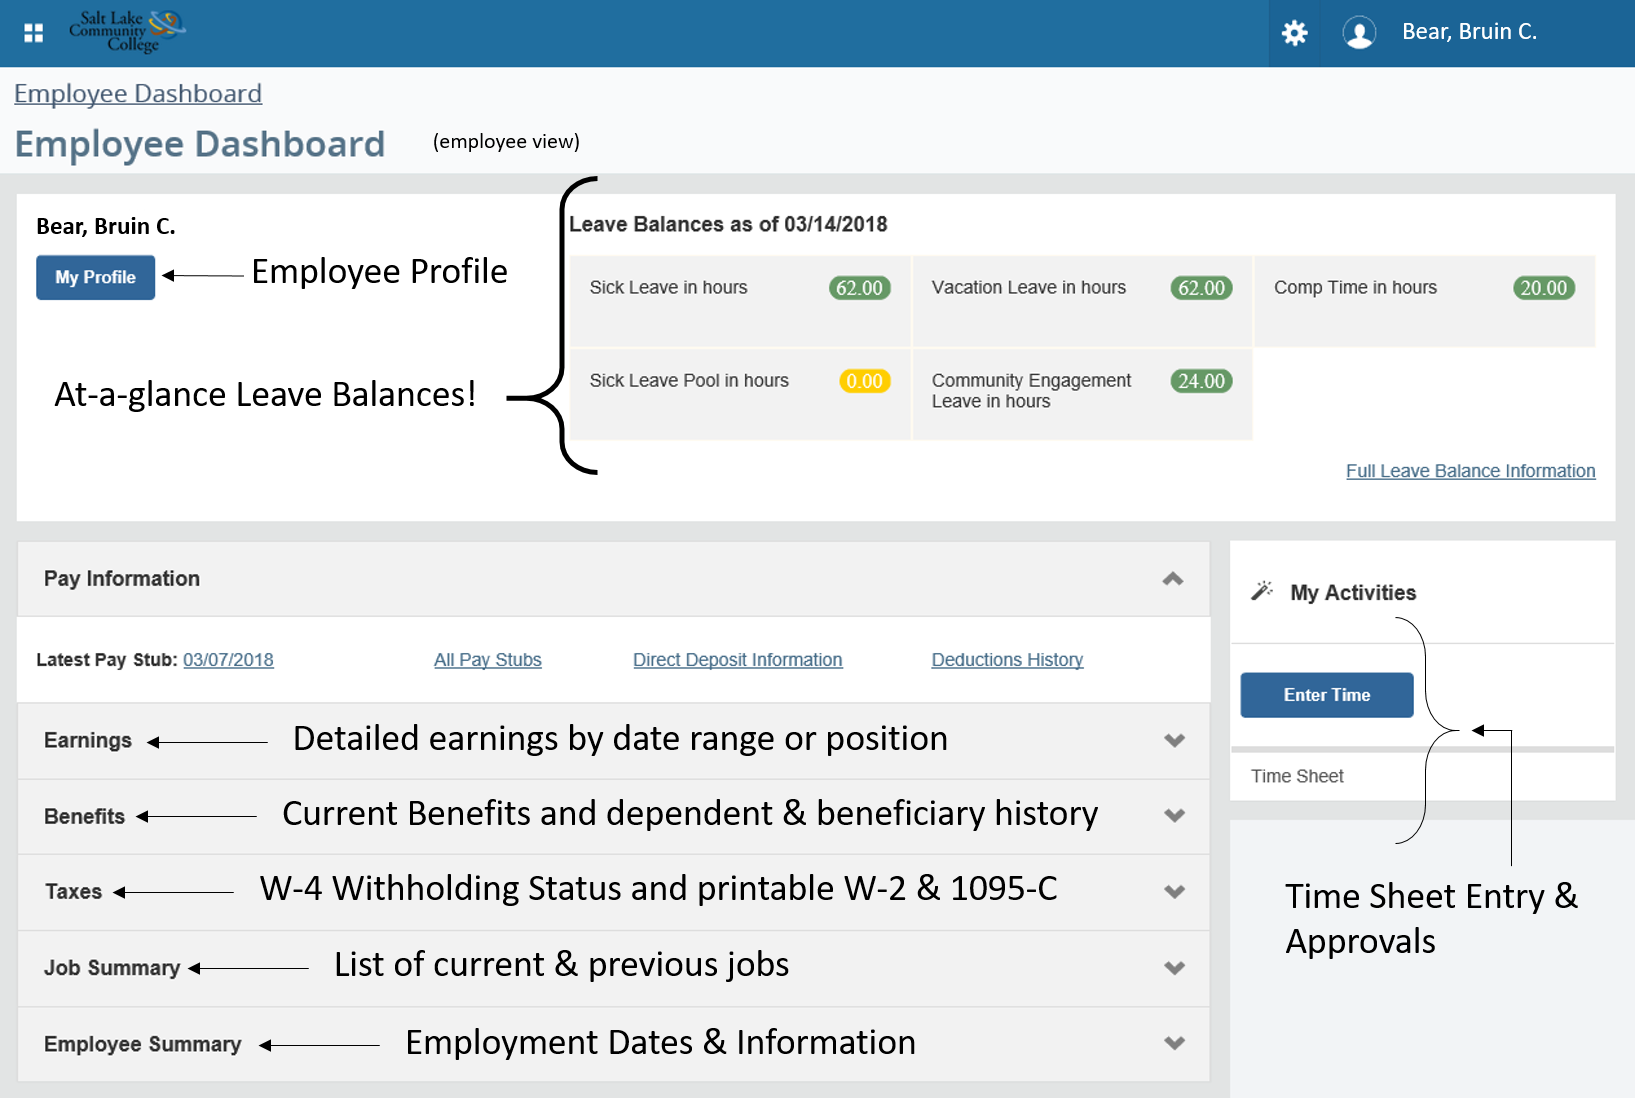 Employee Information And Benefits | Slcc with Payroll Calendar Slcc